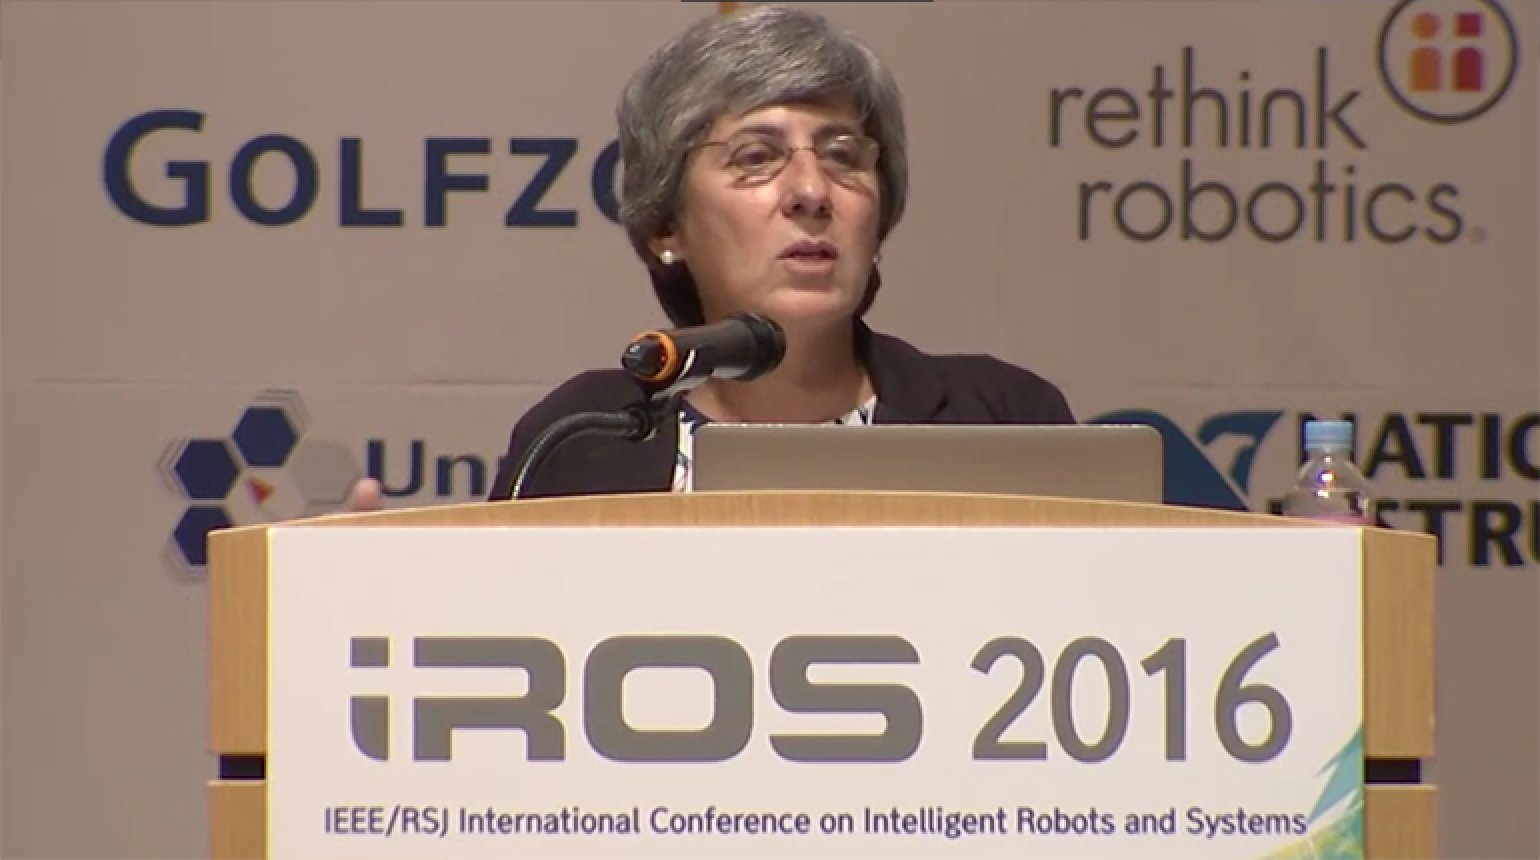 Autonomous Intelligent Service Robots: Learning and Explanations in Human-Robot Interaction